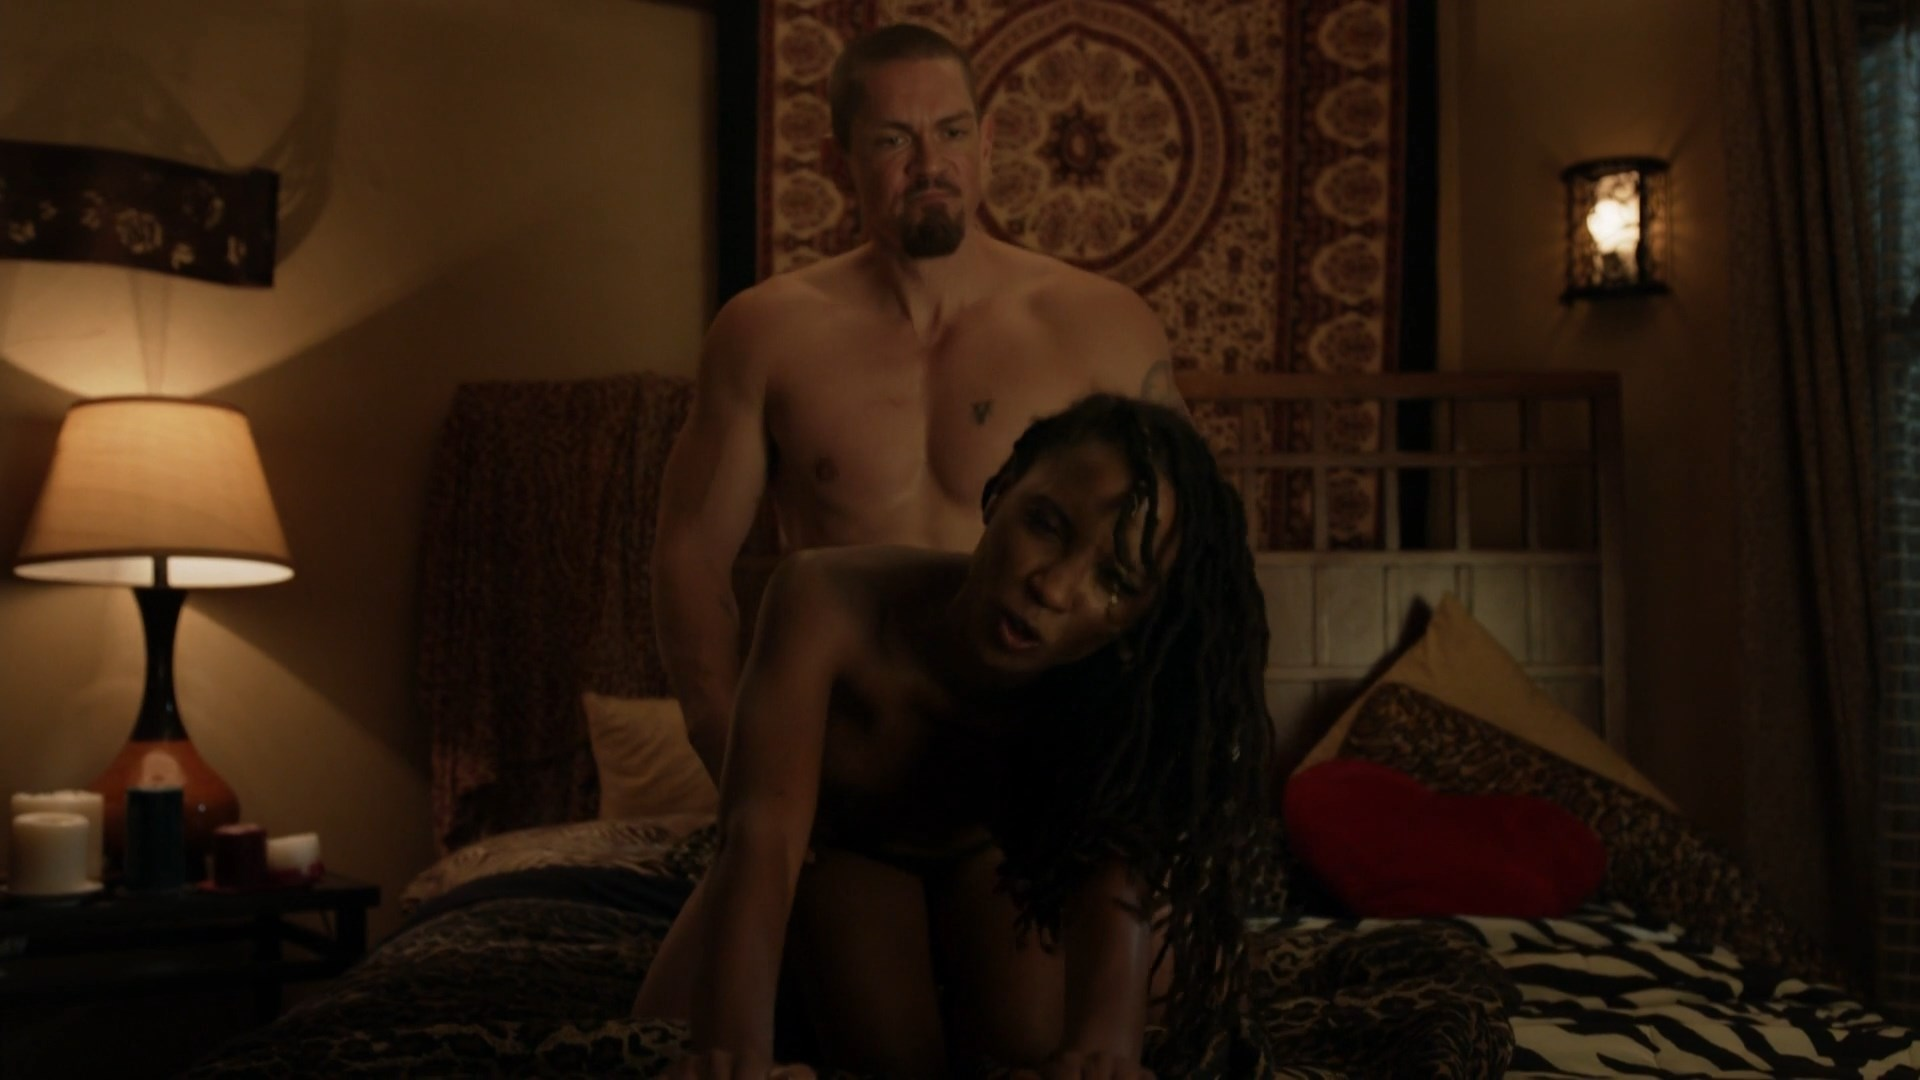 images Shanola hampton sex on a pool table in shameless series